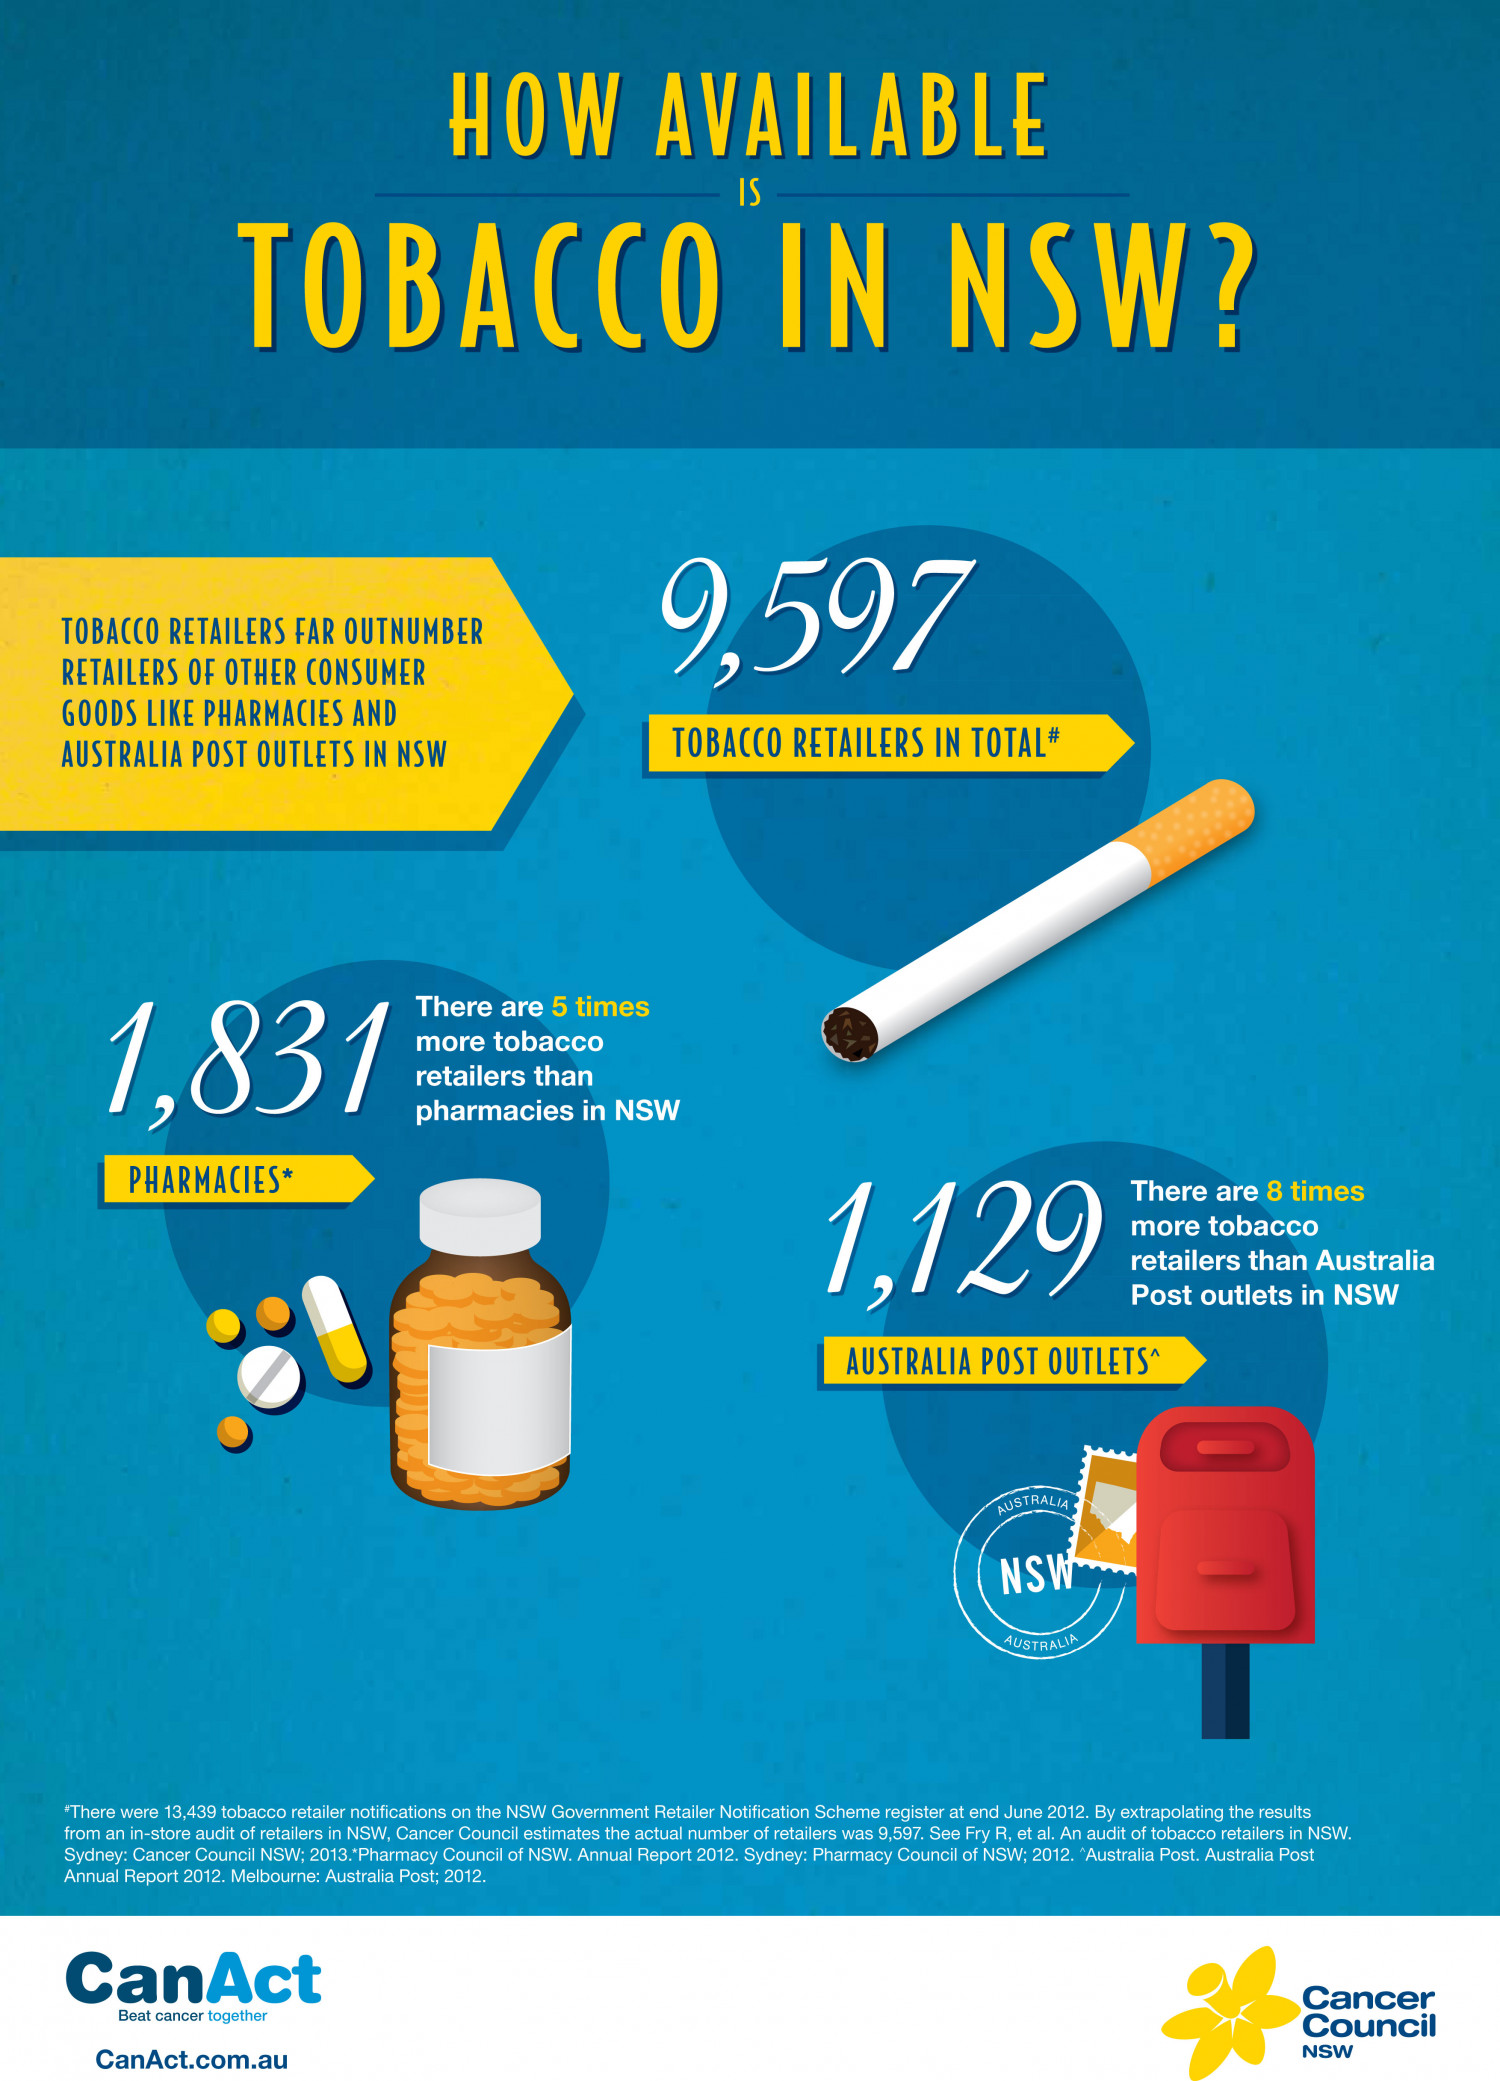 How Available Is Tobacco In New South Wales? Infographic